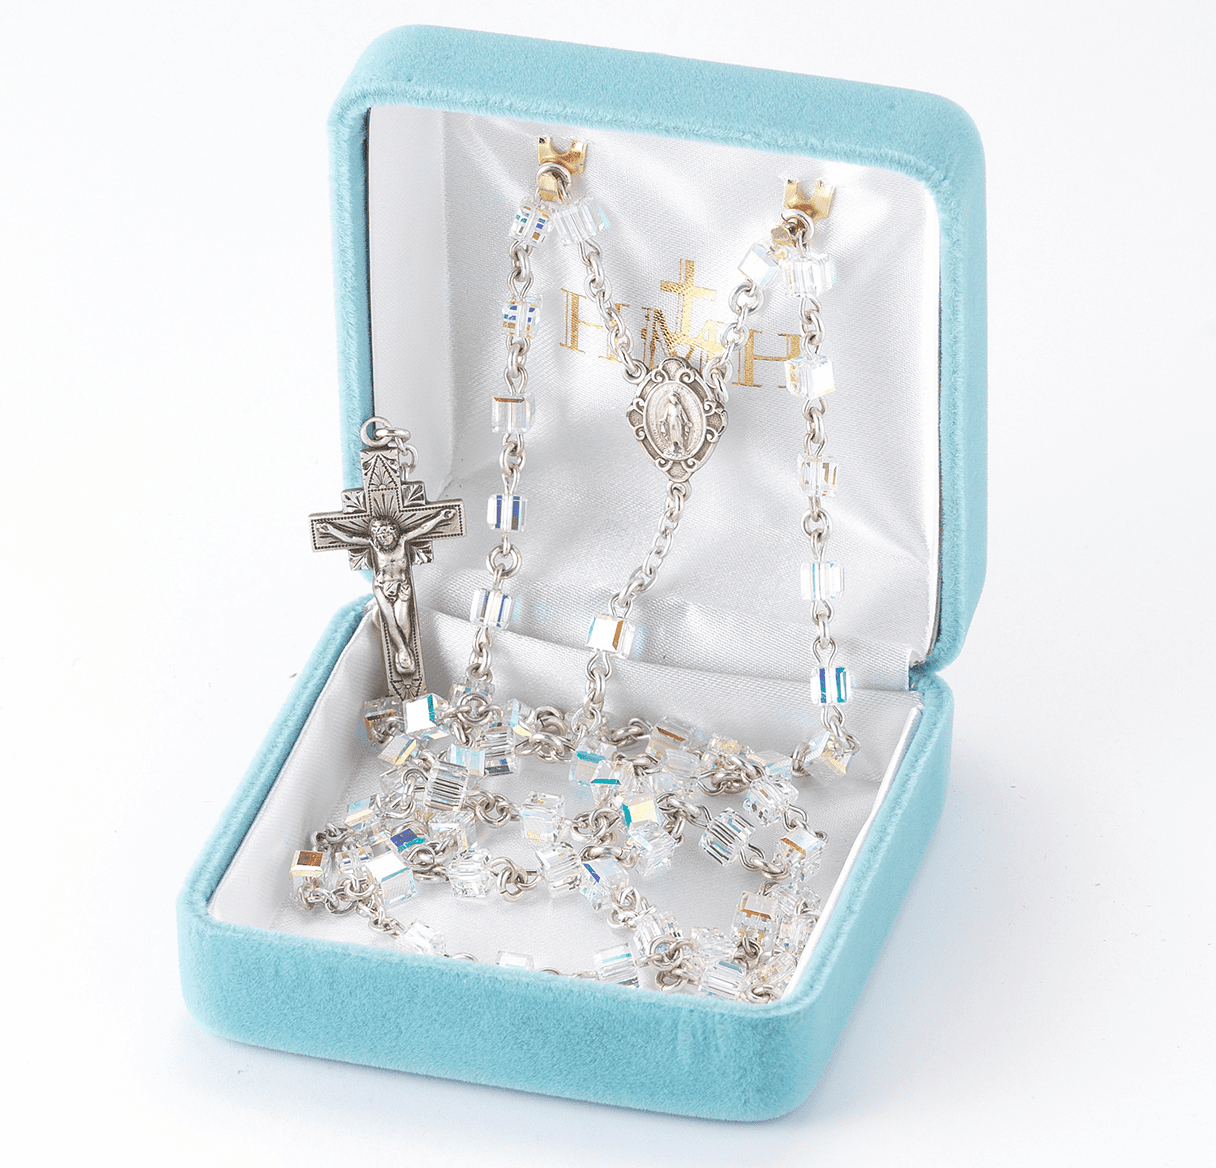 Aurora Borealis 4mm Swarovski Crystal Cube Sterling Silver Childs Rosary by HMH Religious